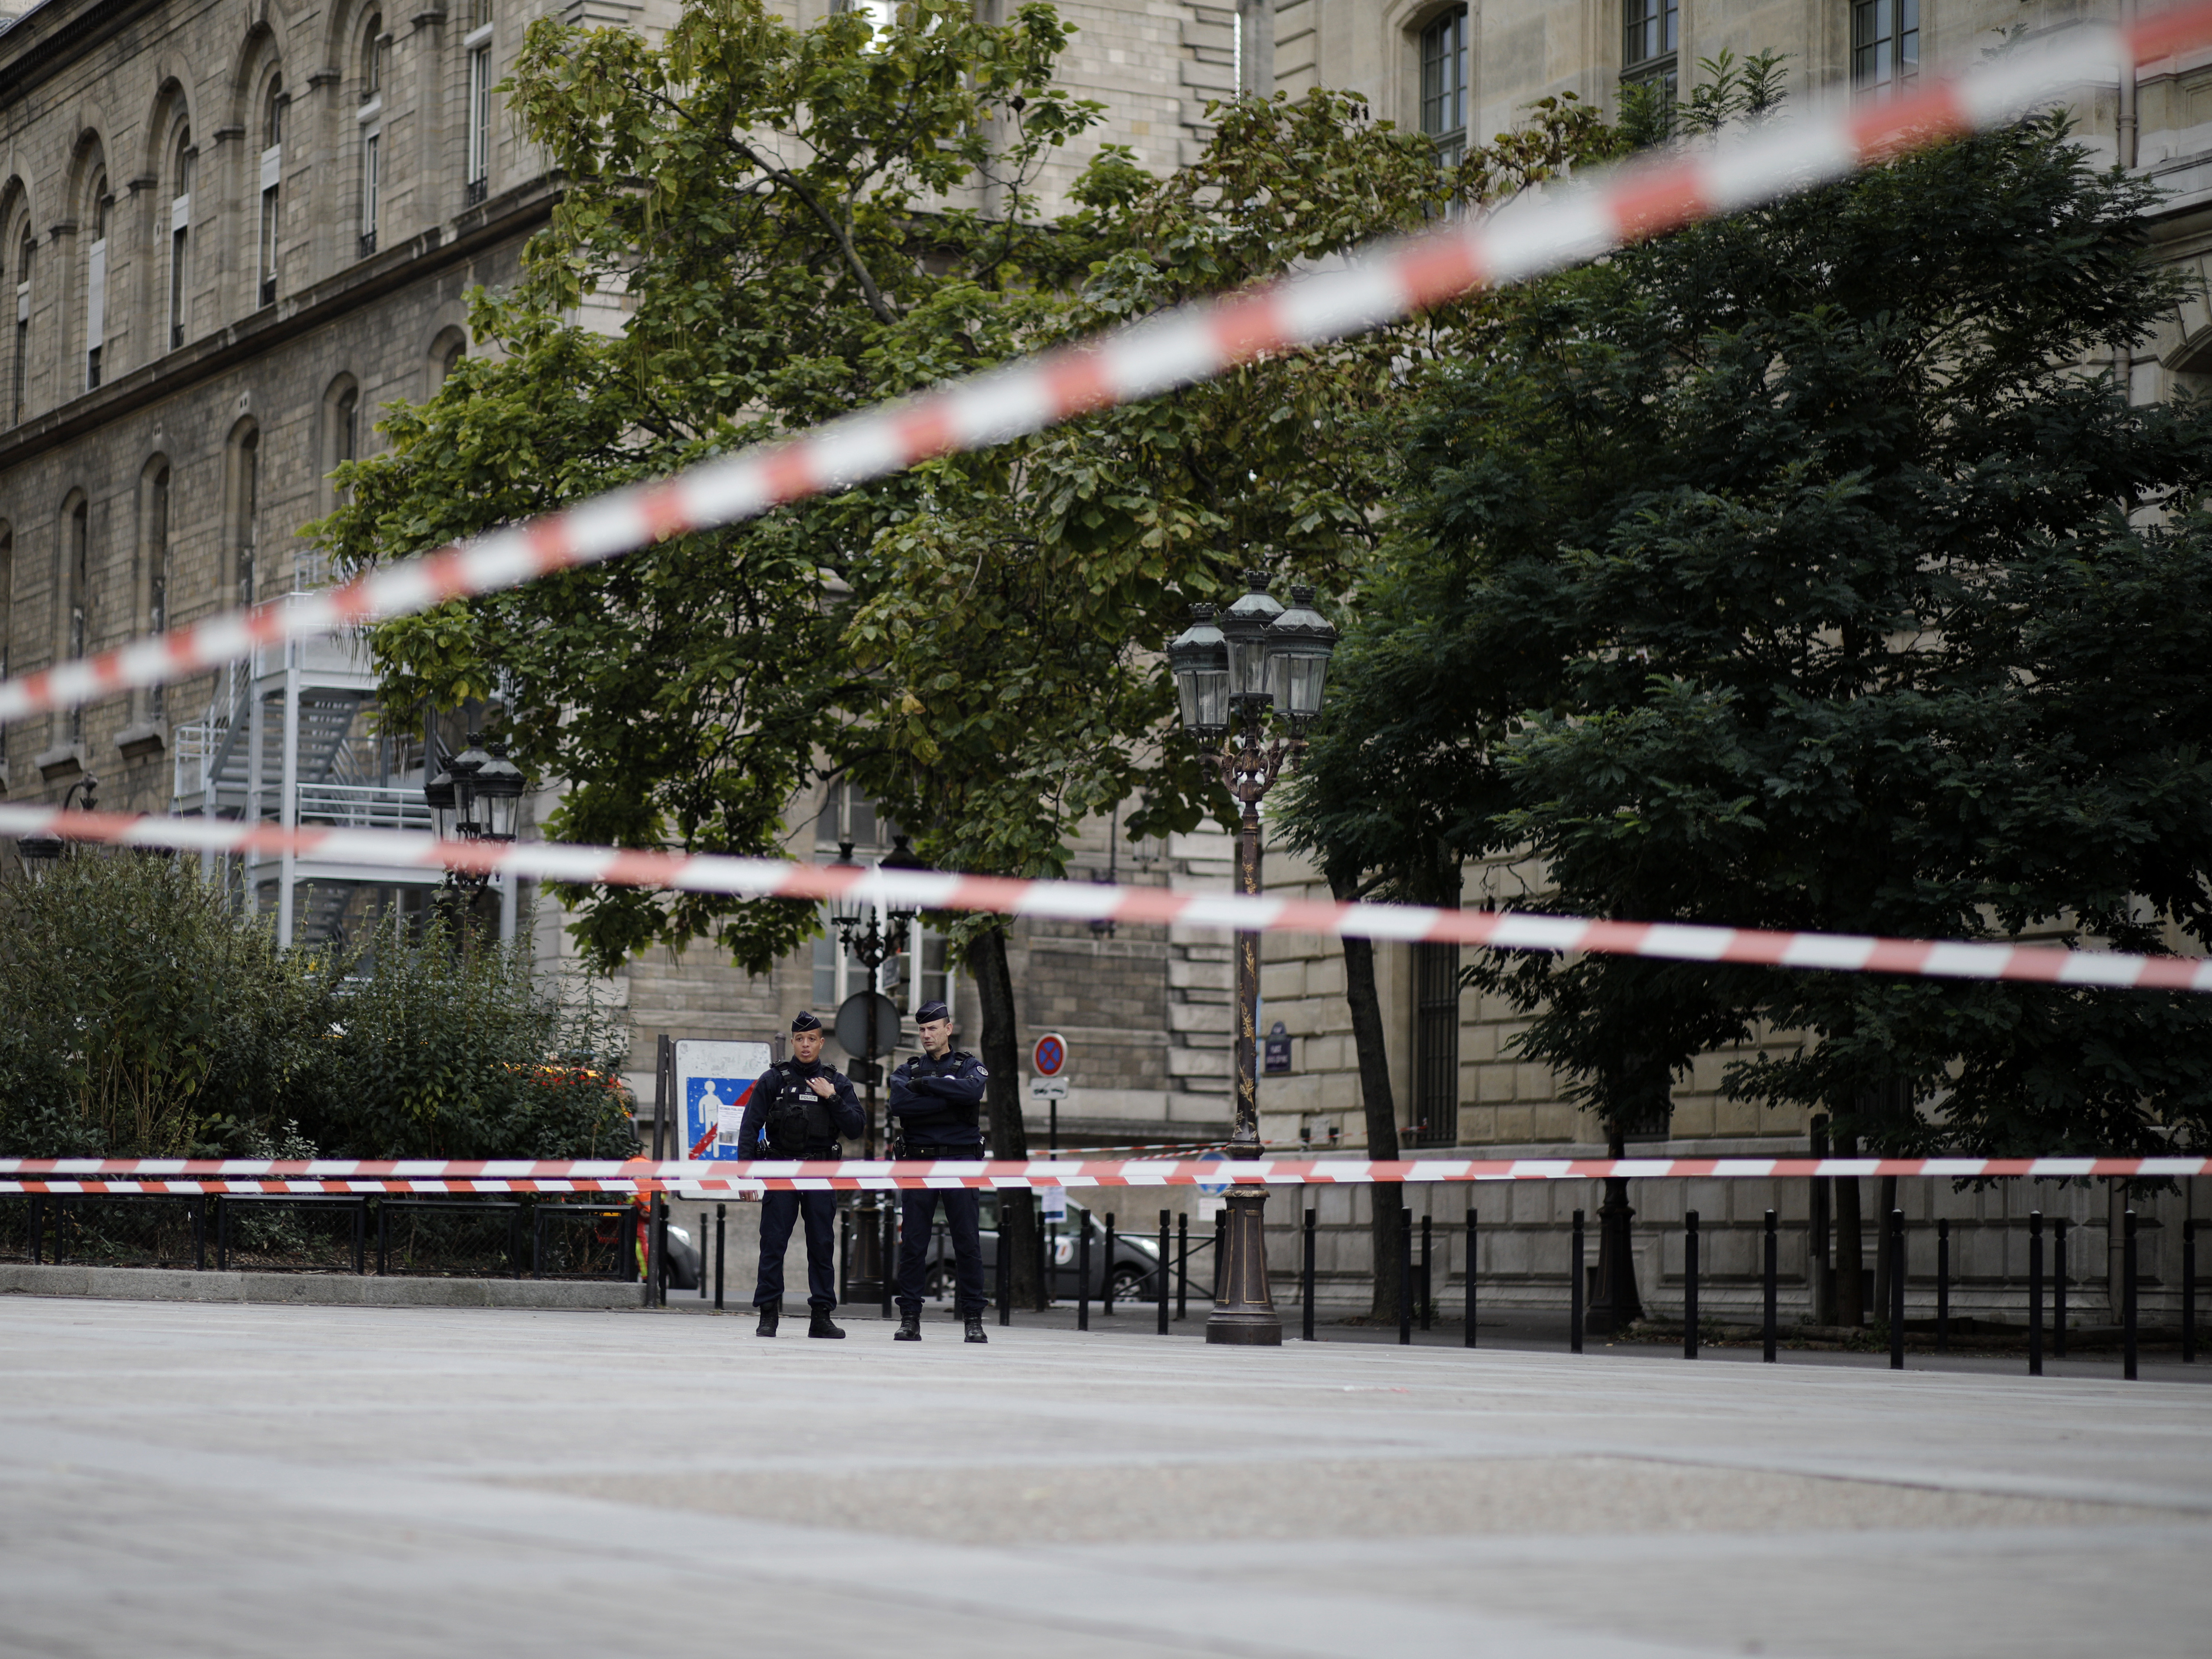 4 People Killed By Knife-Wielding Attacker At Paris Police Headquarters